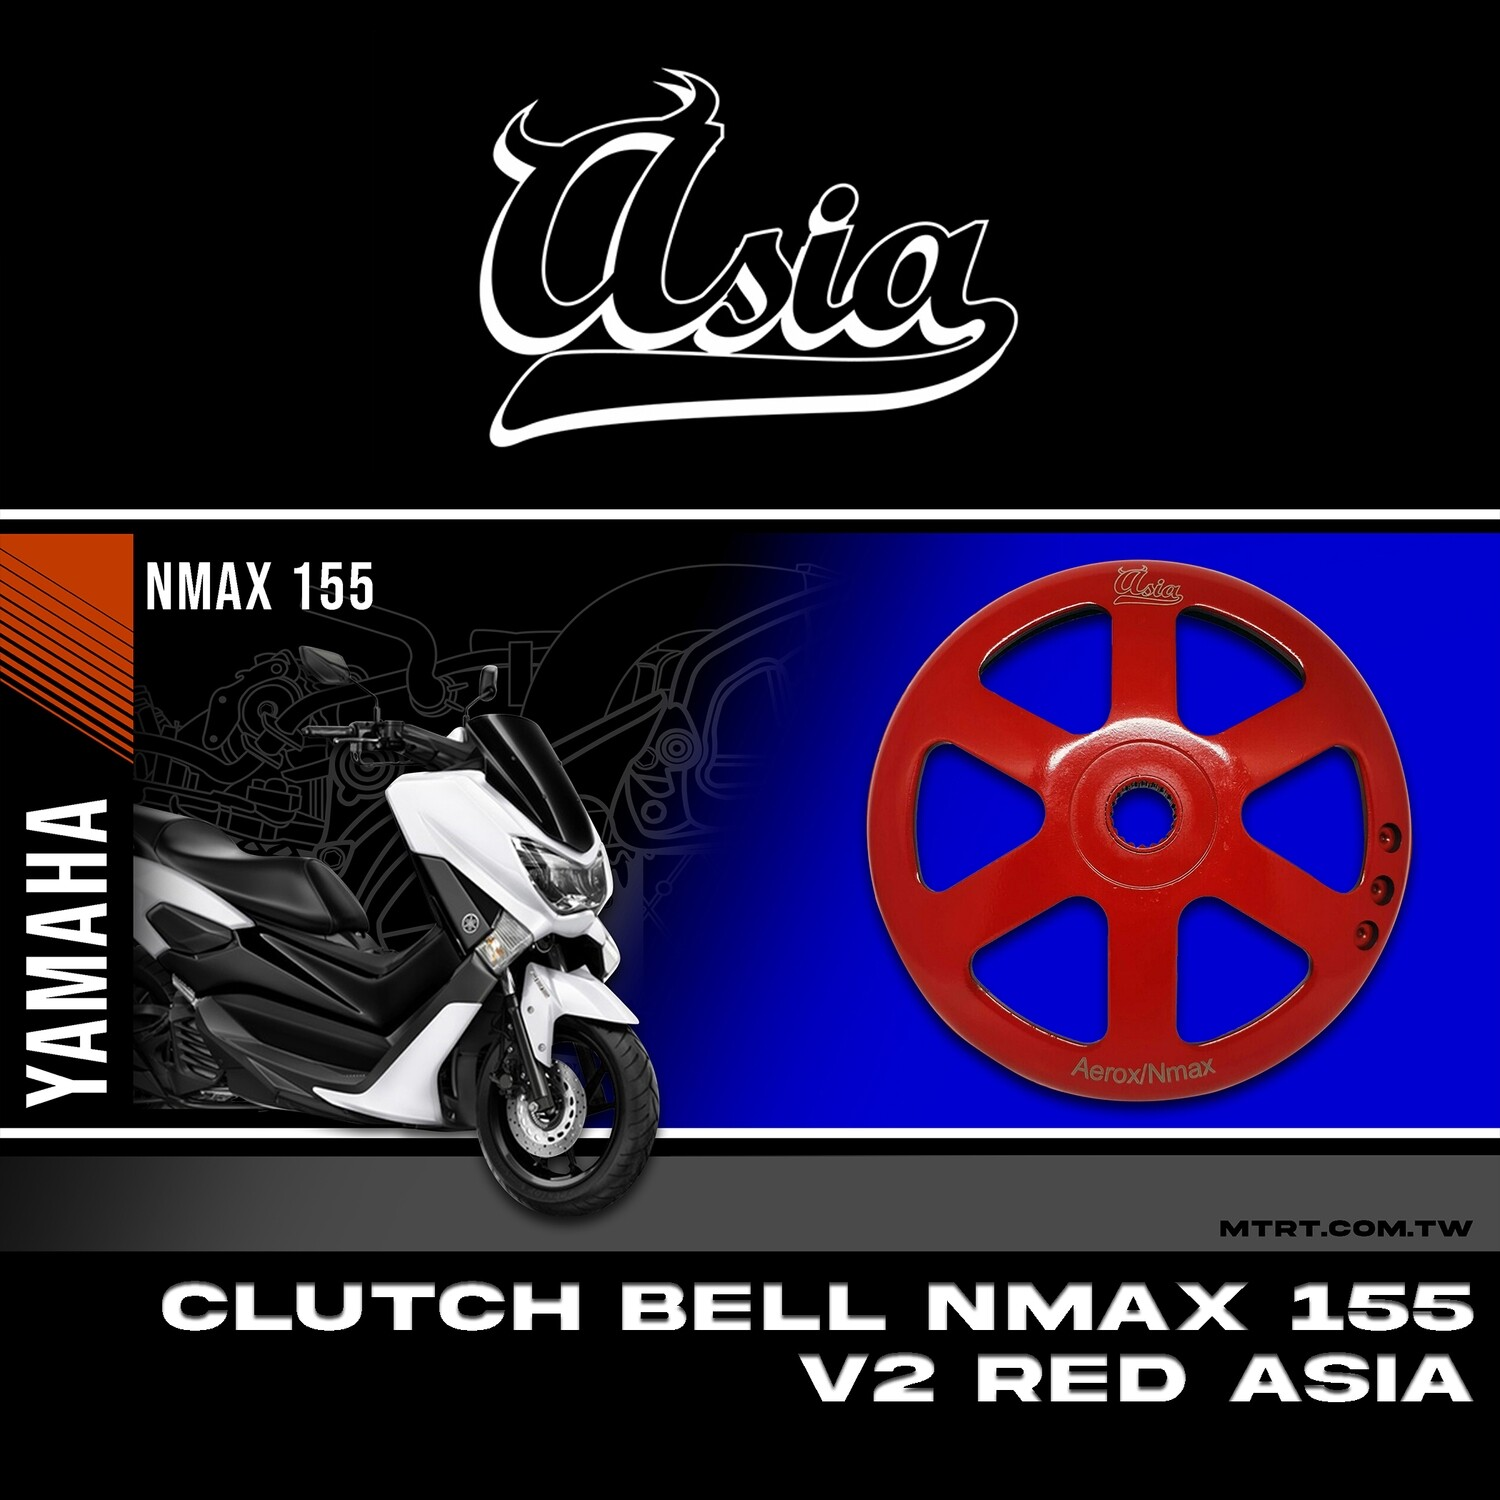 CLUTCH BELL V2 NMAX RED ASIA